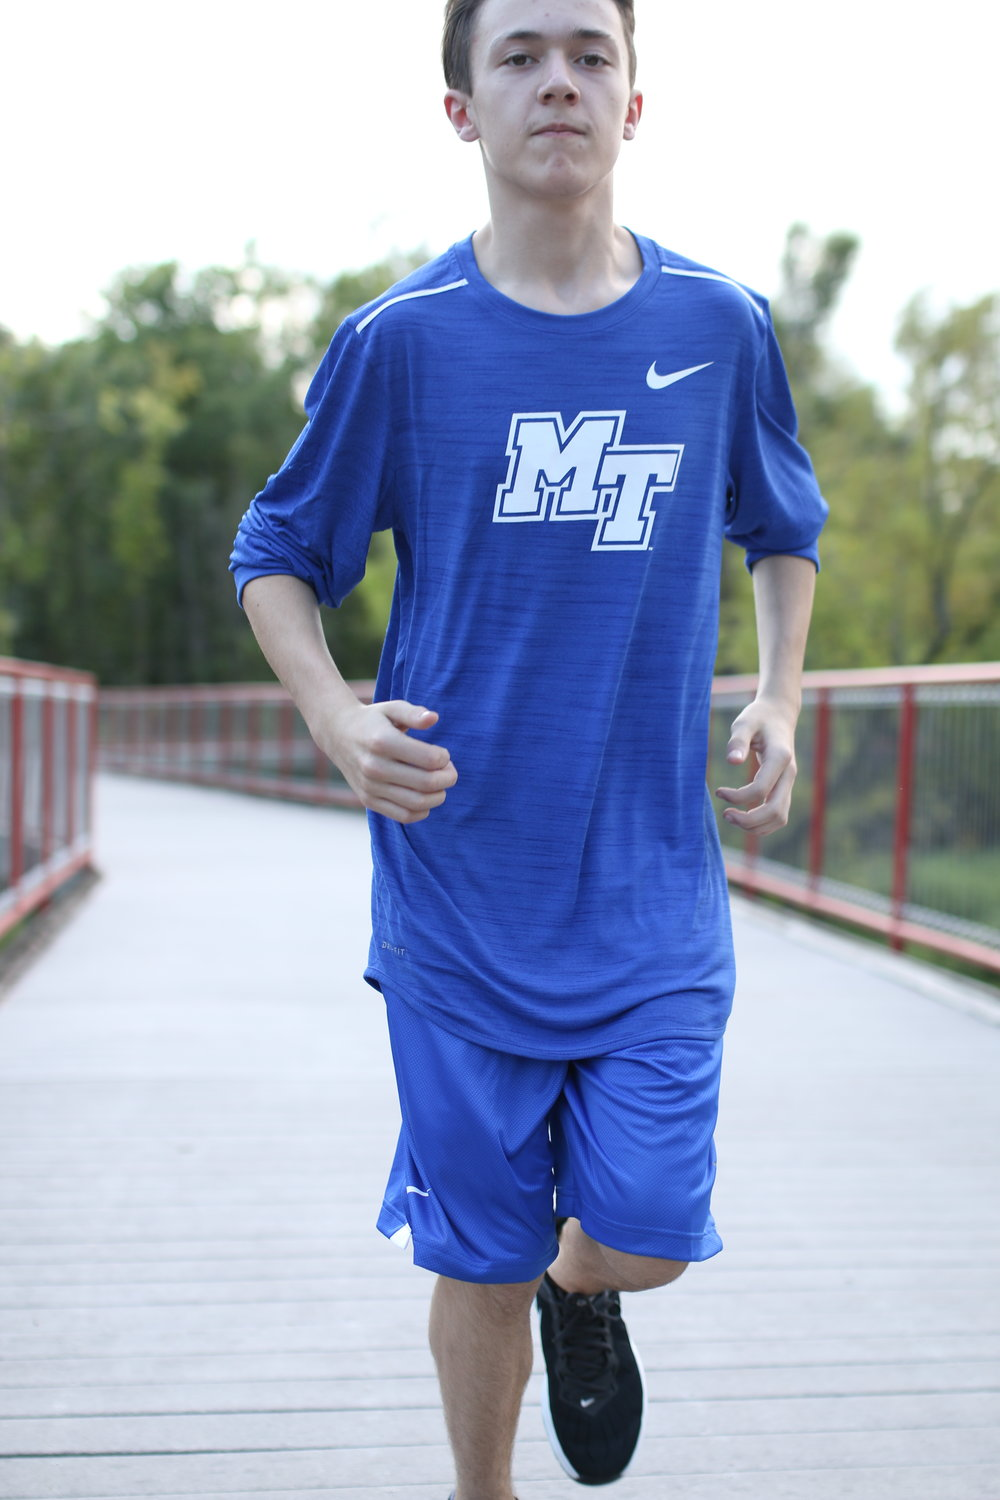 Will (Alumni Hall) Nike MT blue sleeveless running shirt and coordinating athletic shorts